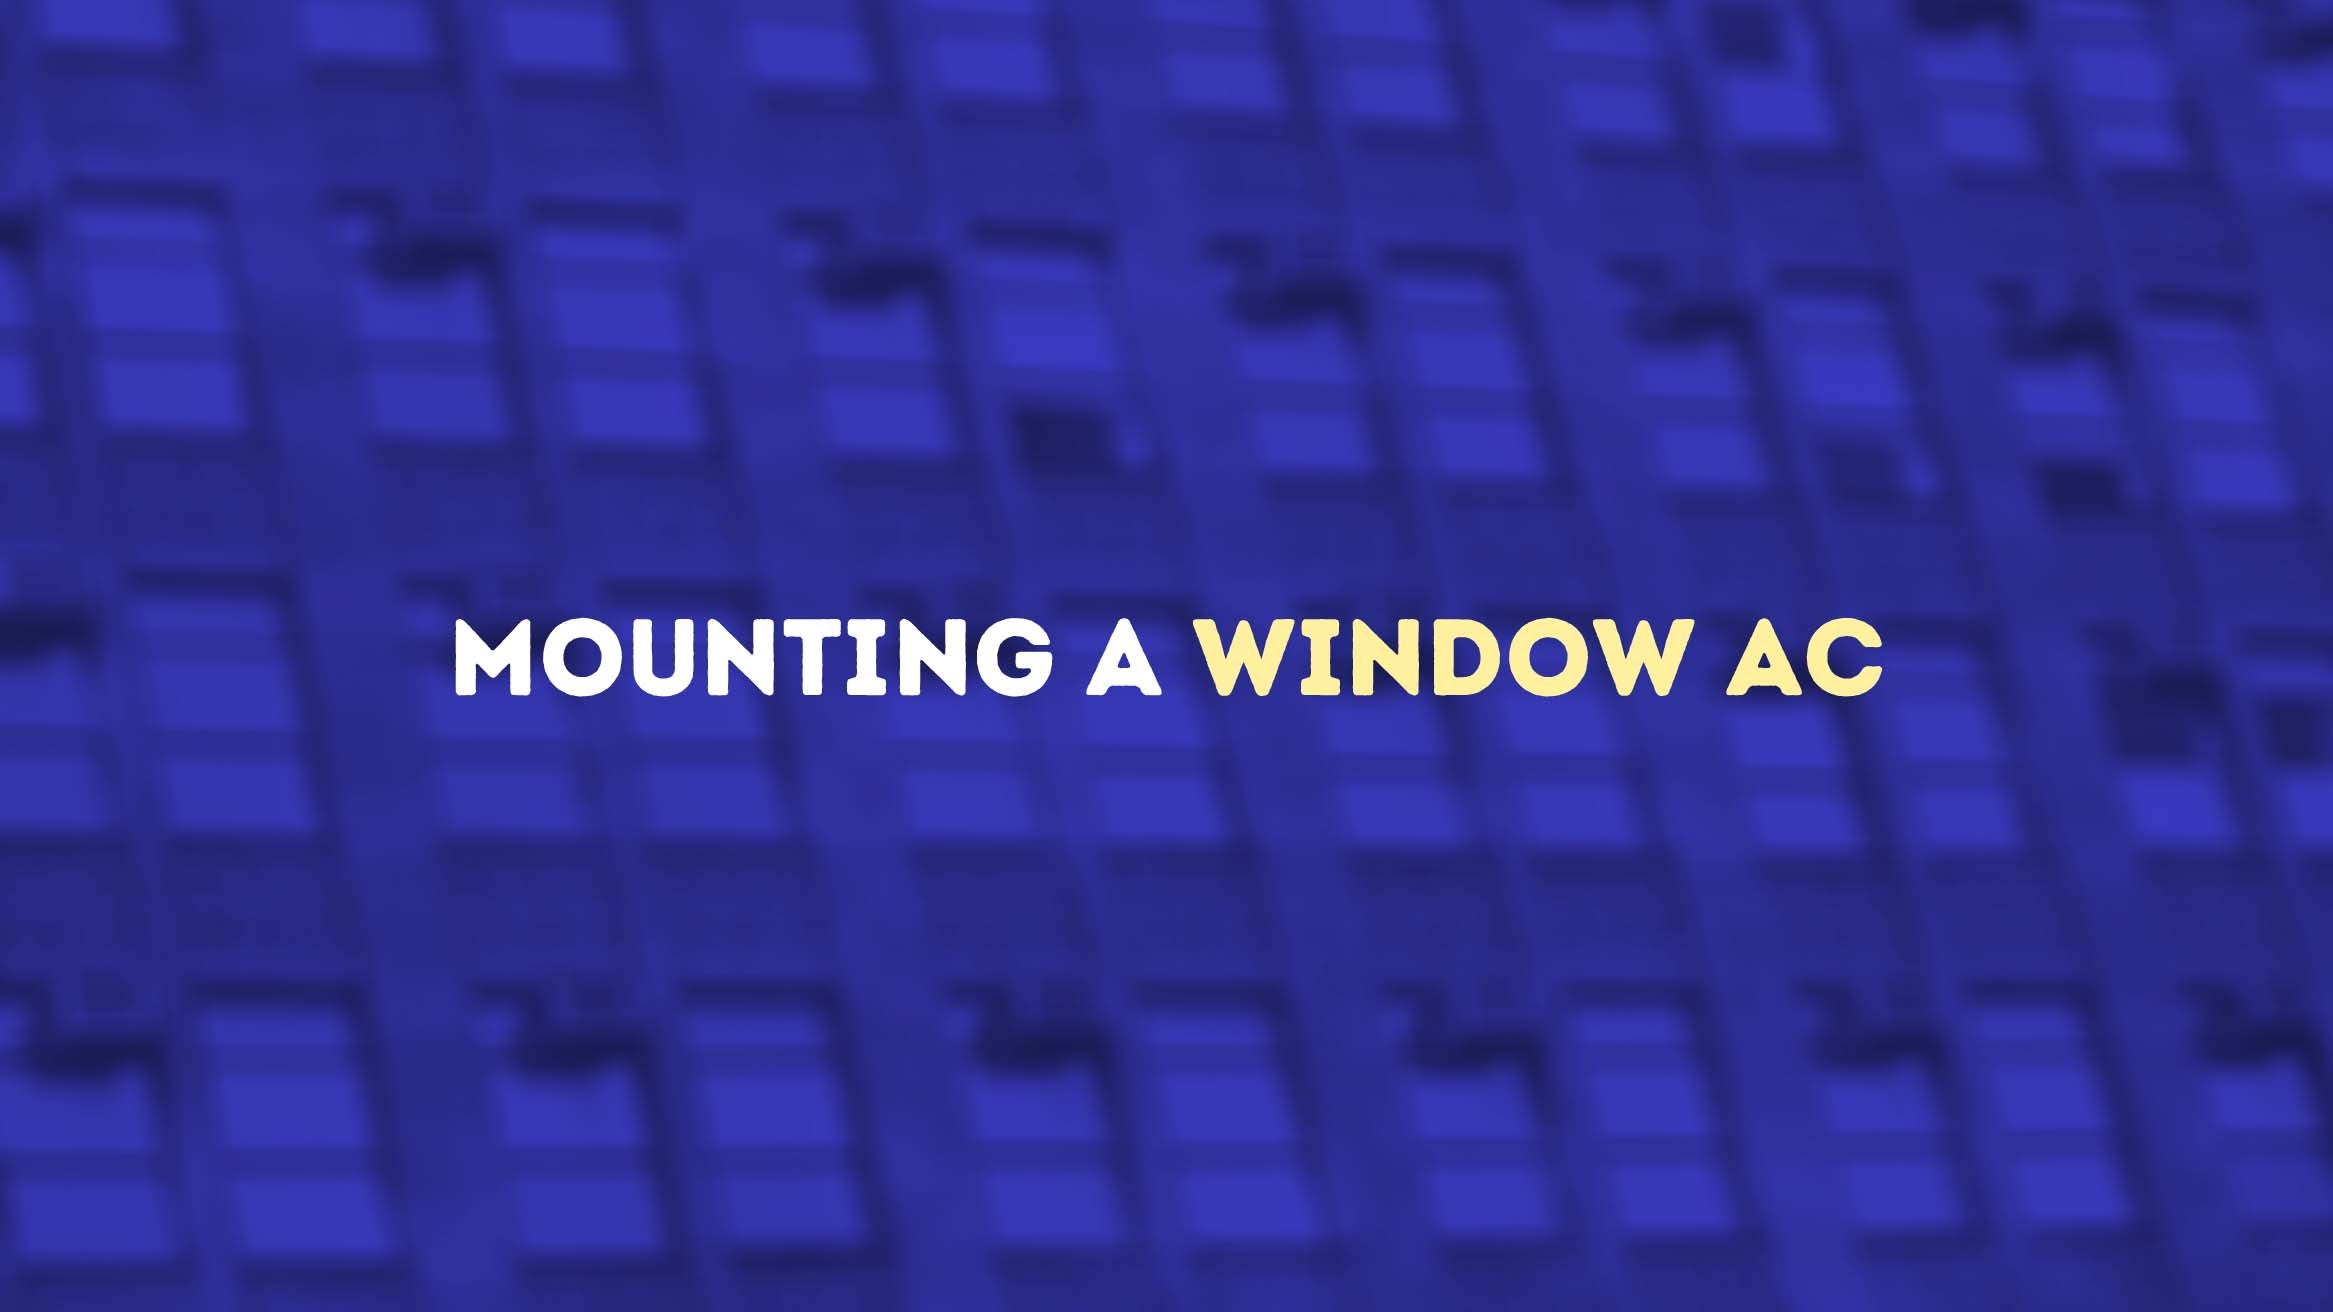 Mounting a window AC - Home Appliances Plus